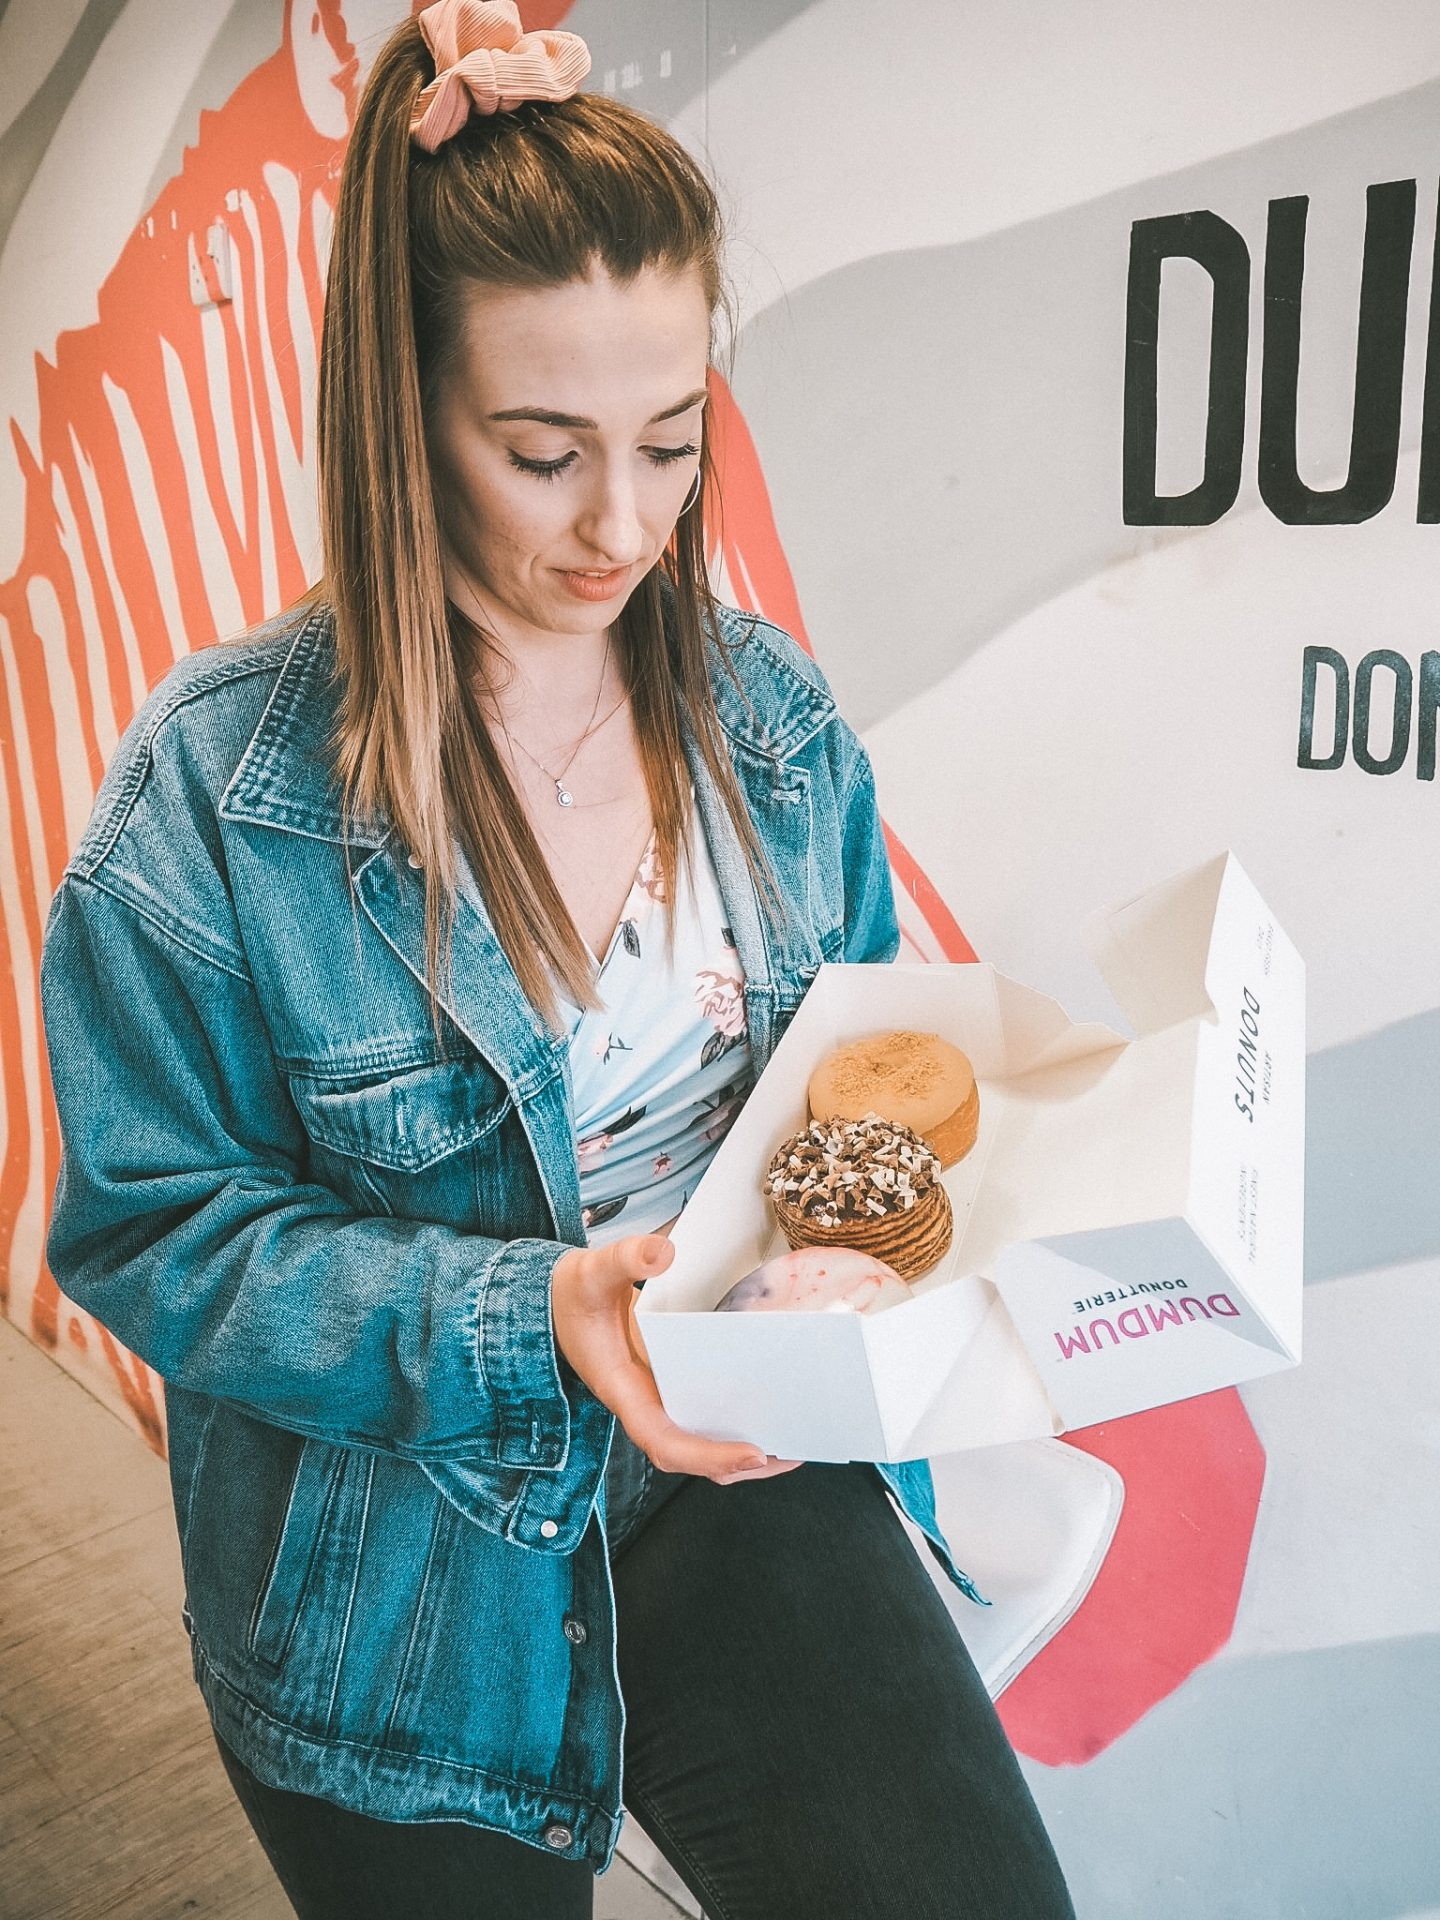 Box of three doughnuts from dum dums